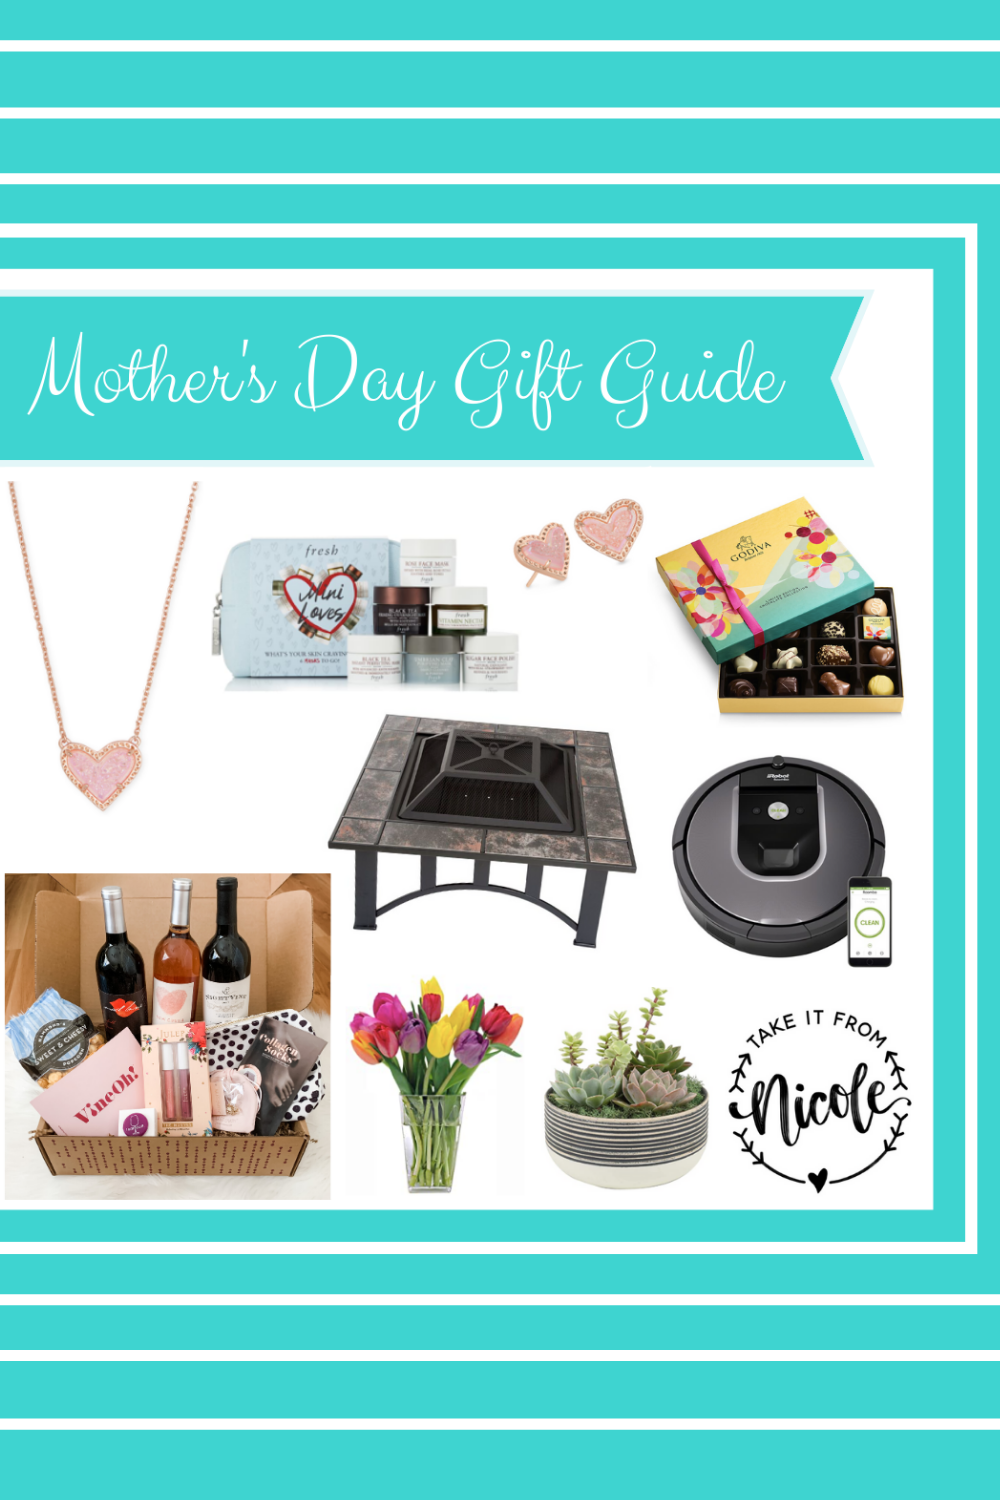 I love making gift guides but this one was a little tricky. A lot of popular activities like Mother's Day brunches just aren't an option right now. So I handpicked some favorites that will hopefully make her feel loved and special even in the midst of all this chaos.